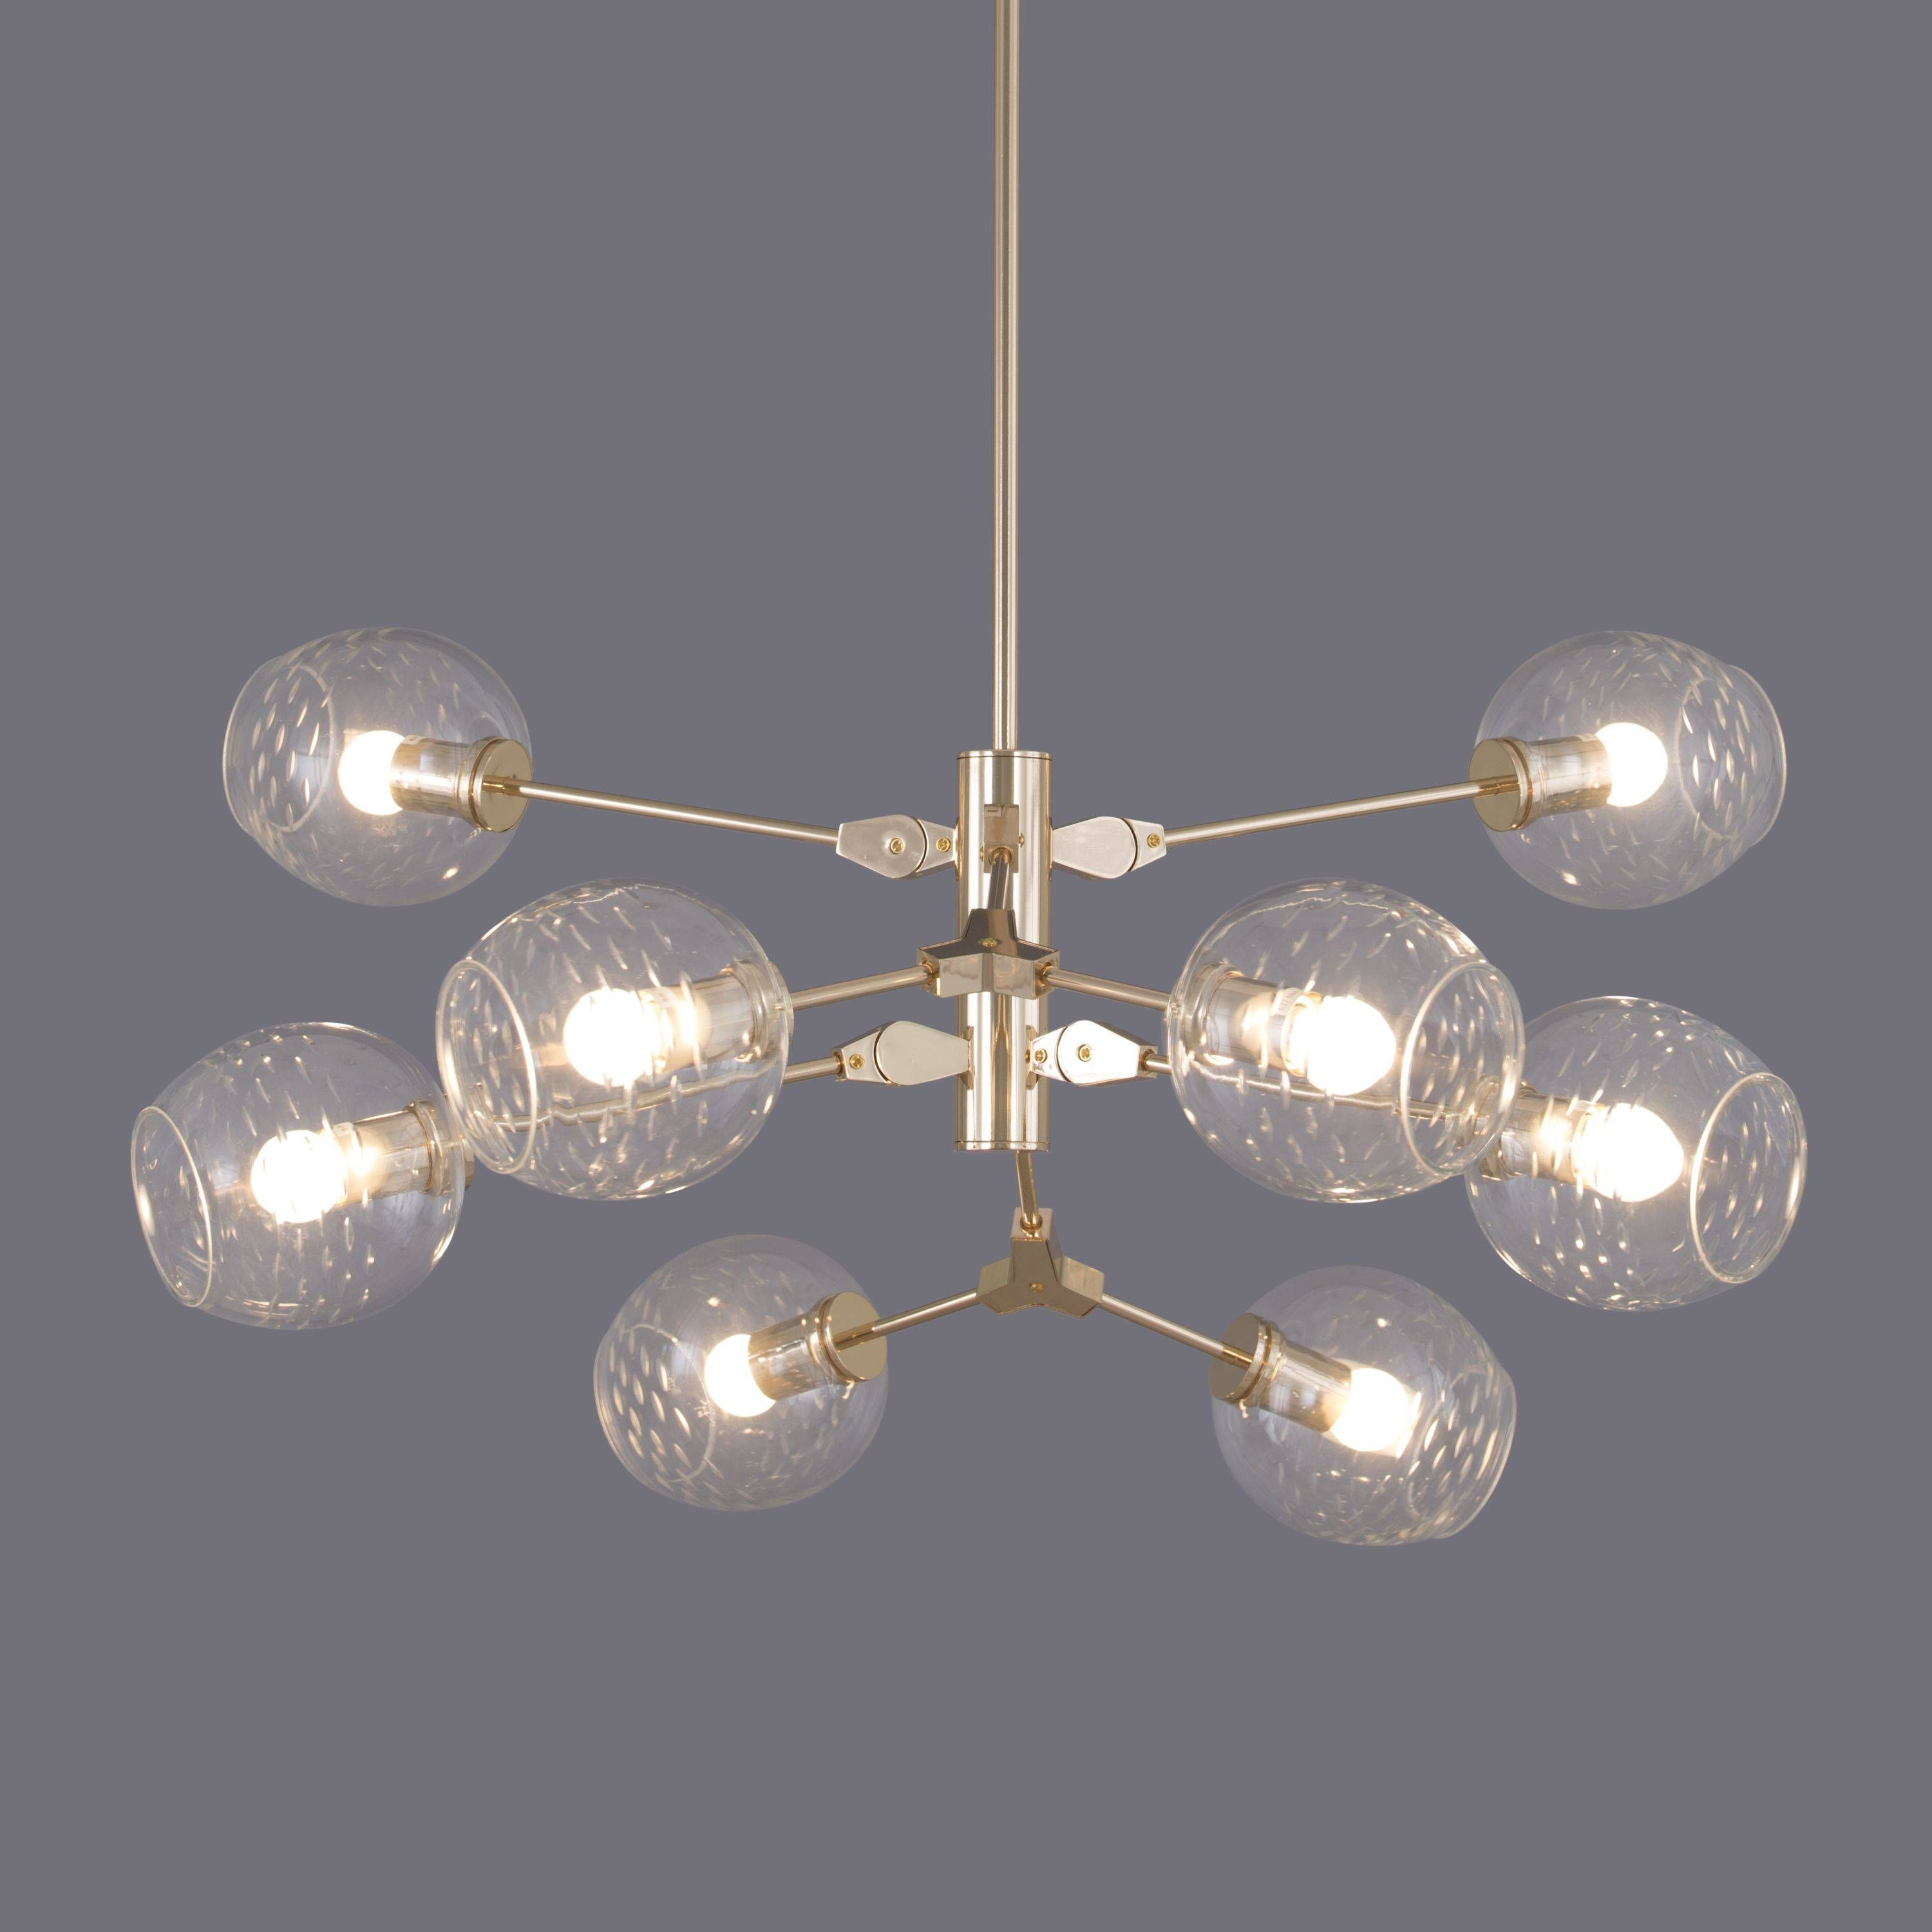 Keeper Of My Heart Premium Chandeliers In India At A Great From